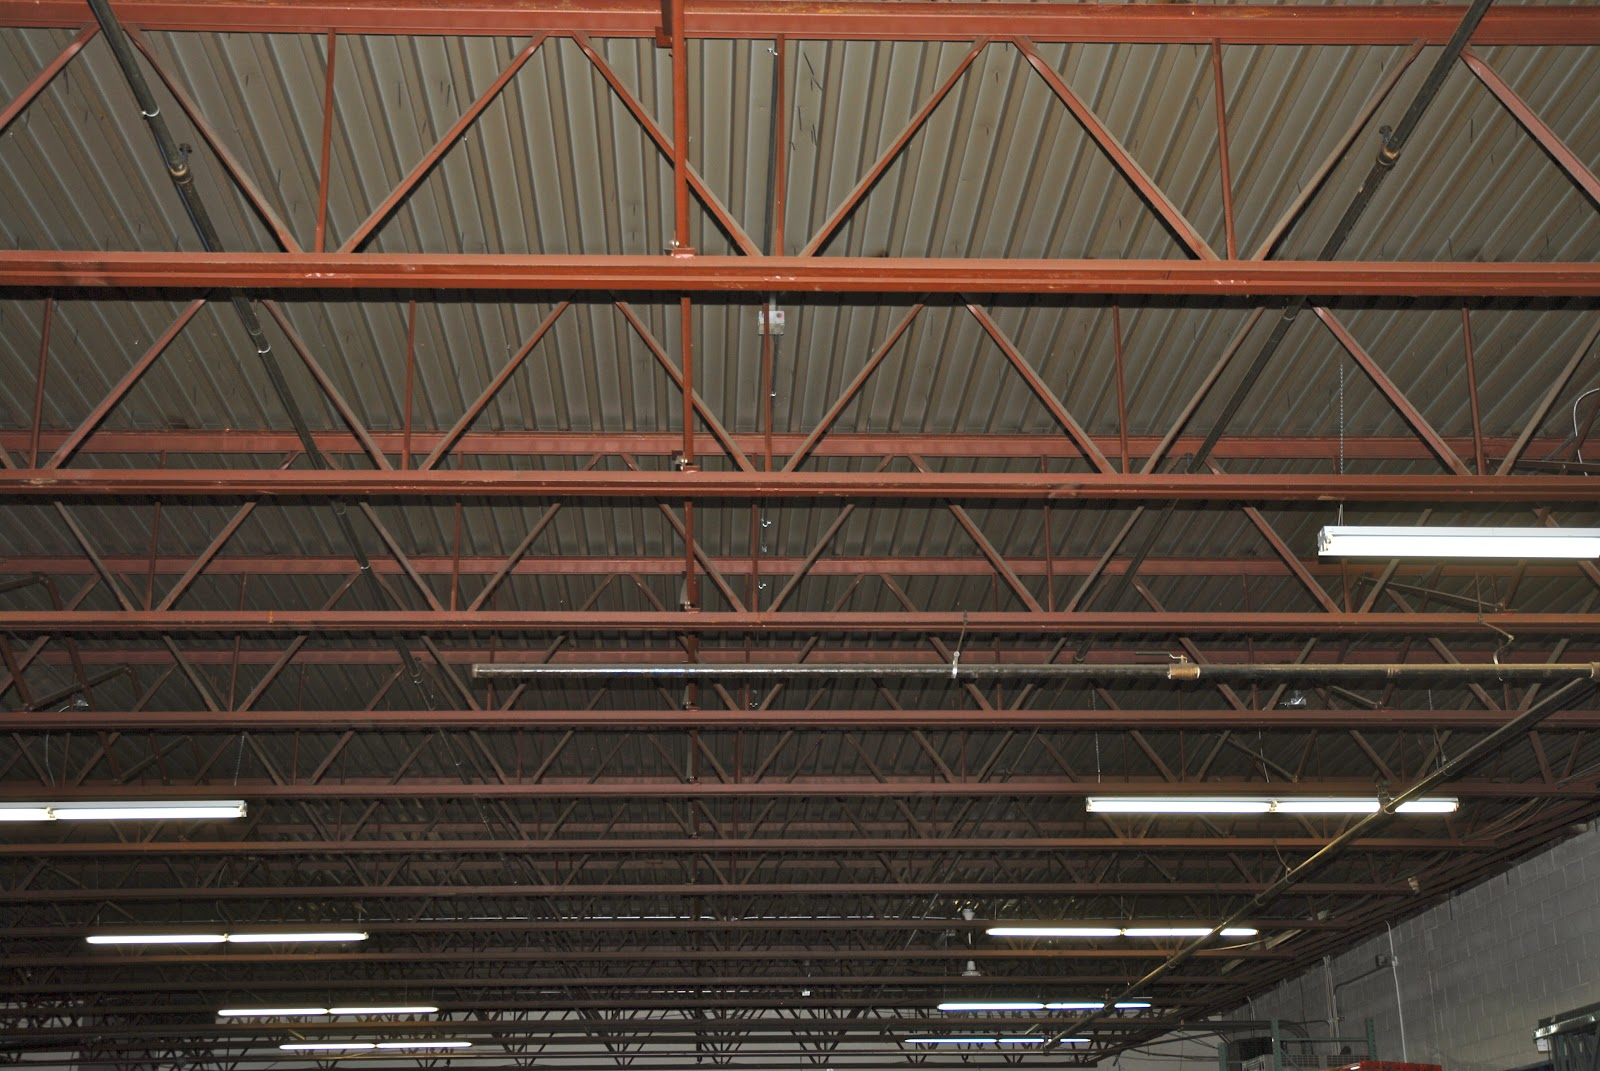 FIRE SAFETY REQUIREMENTS FOR GENERAL WAREHOUSES